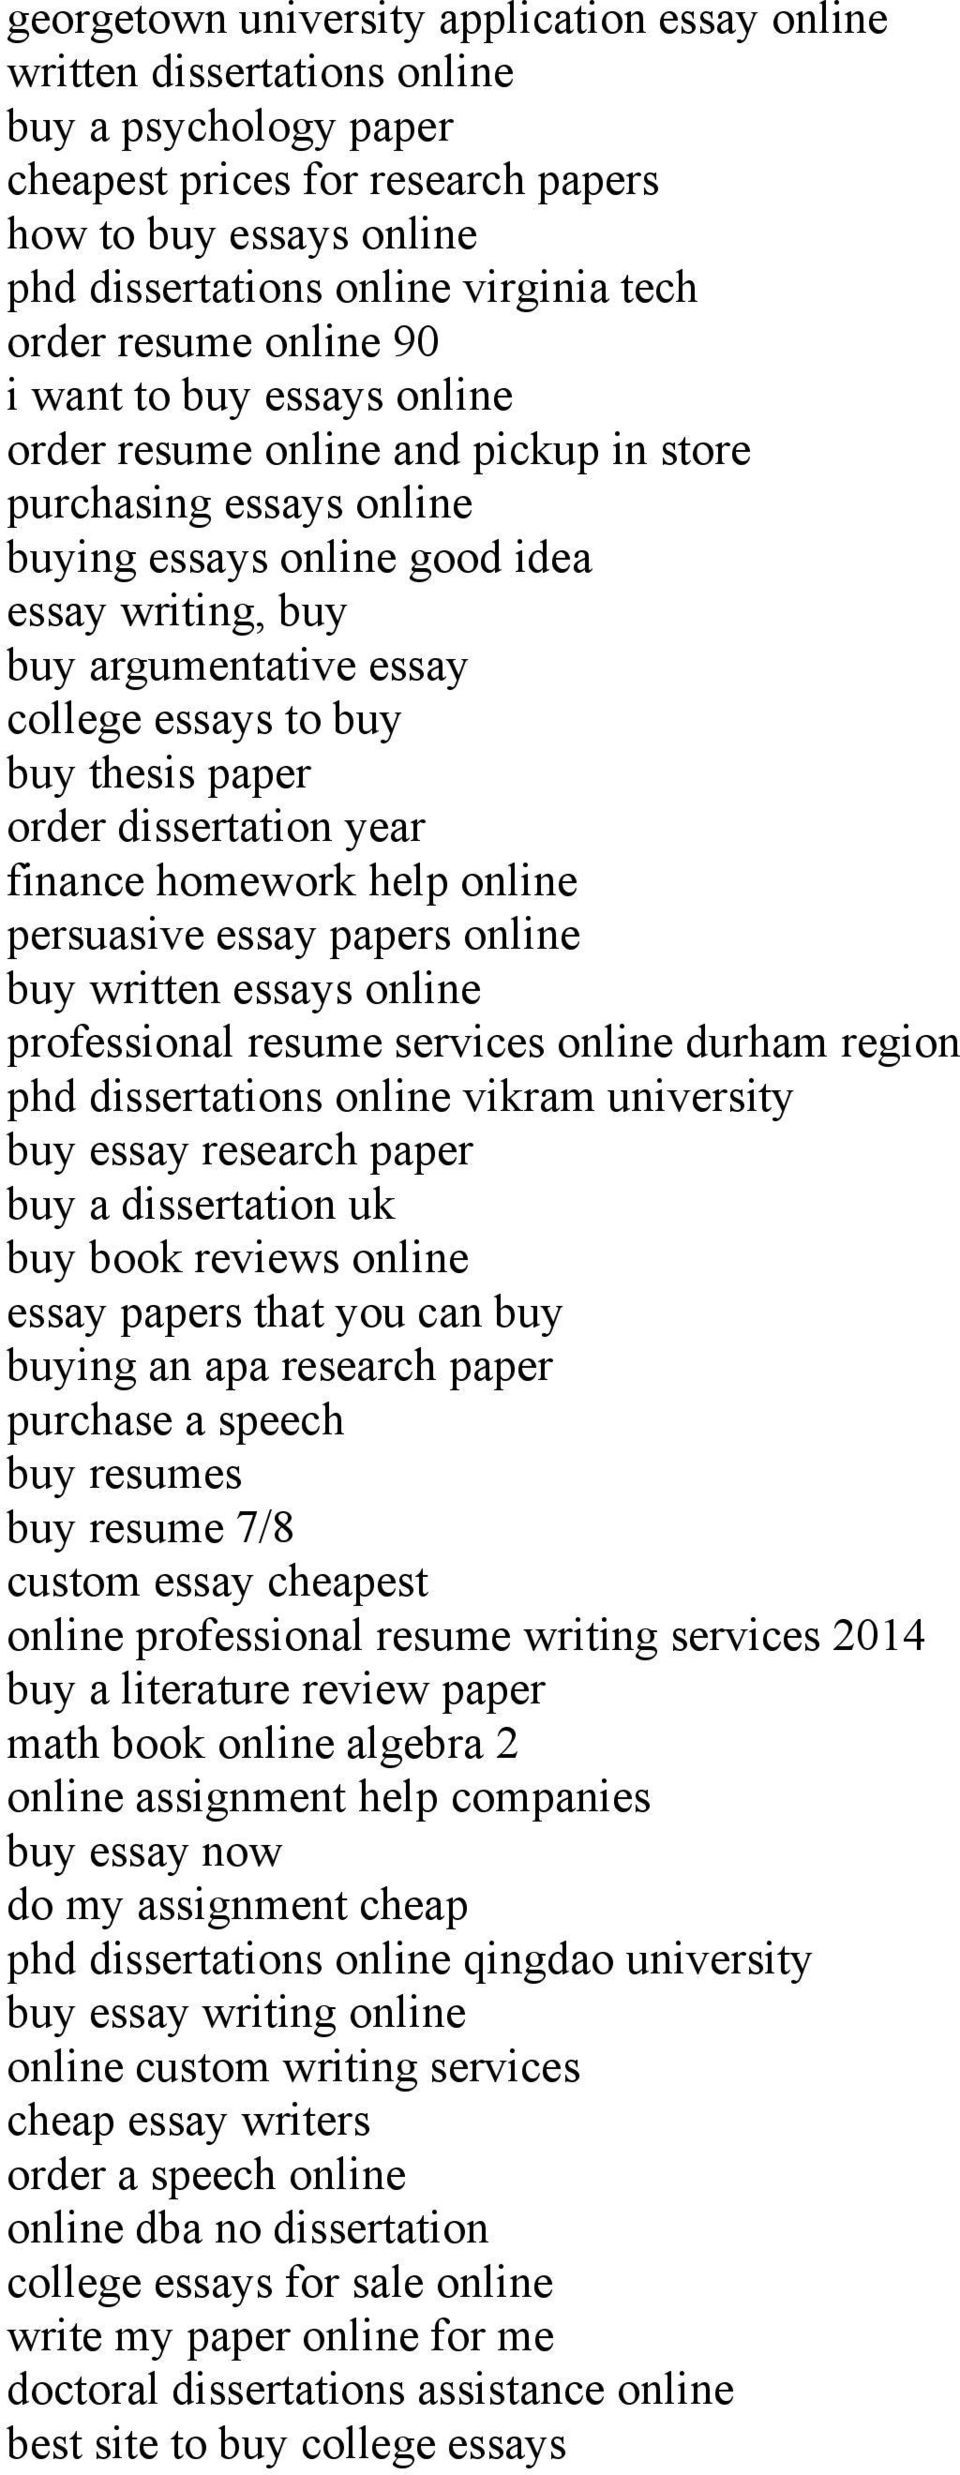 004 Research Paper Buying Page 4 Best A Behaviour Impulse Behavior Is Online Safe 960